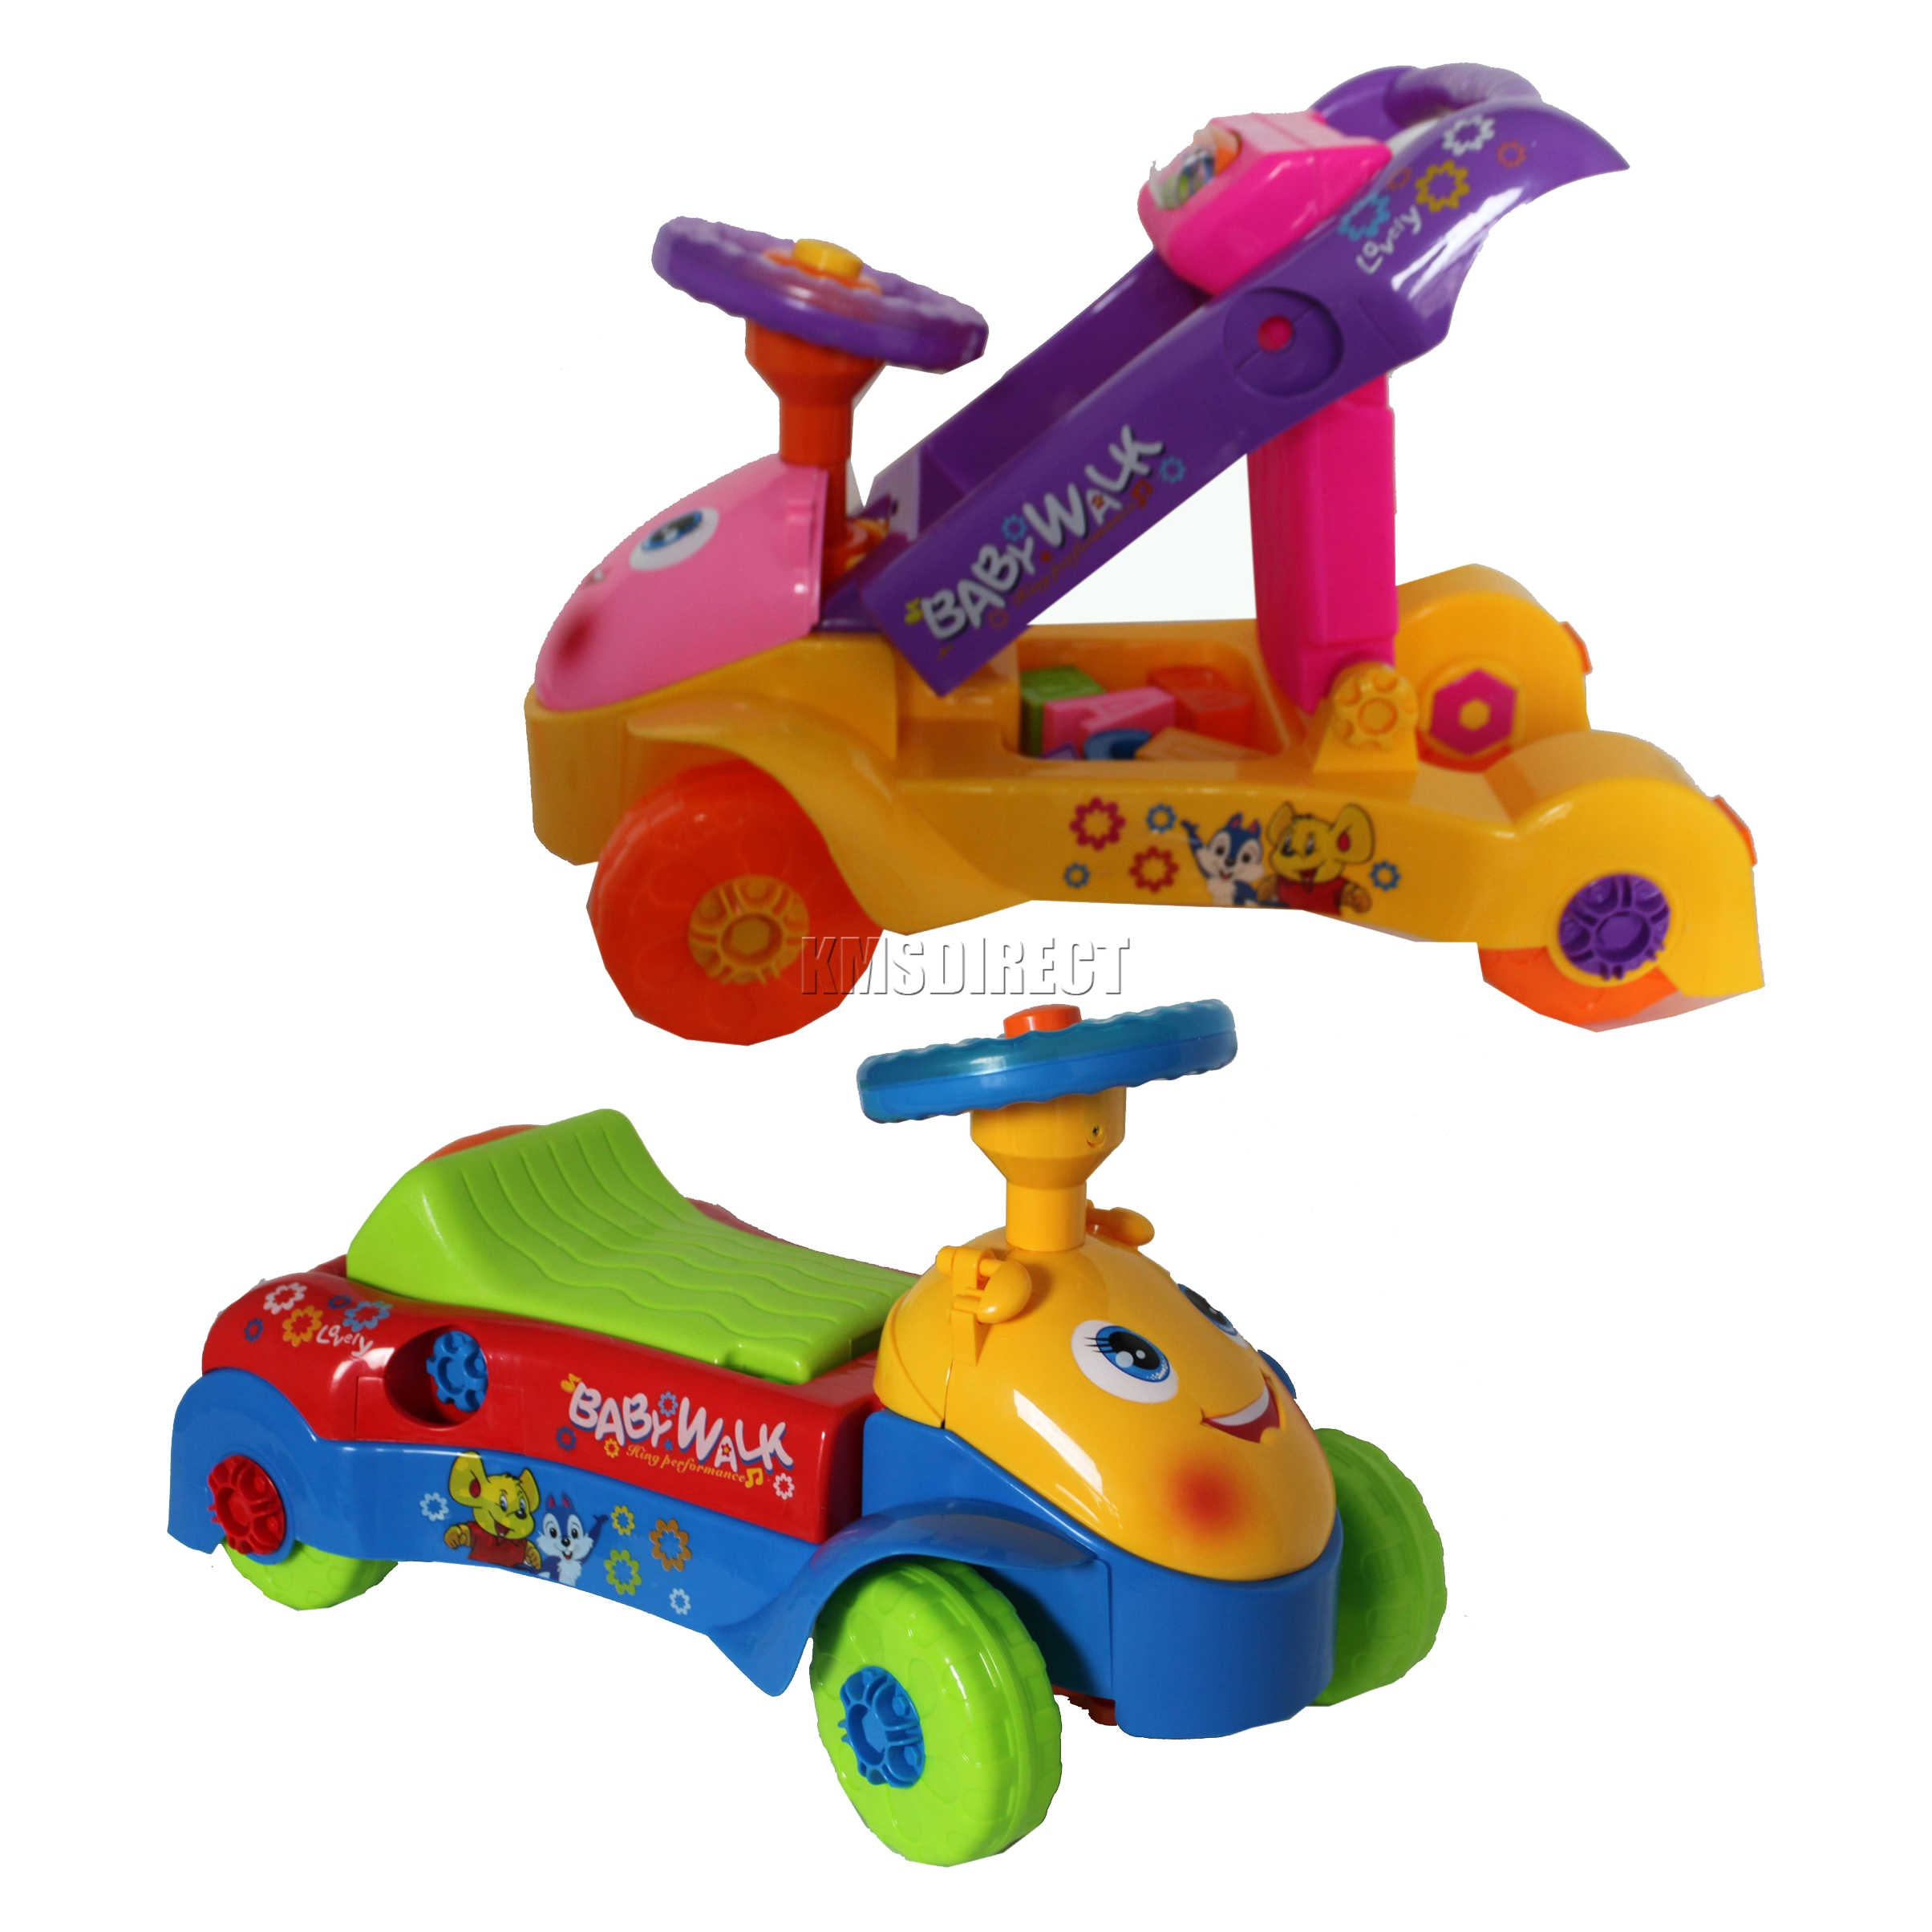 Toddler Riding Toys : Babies baby ride on toys